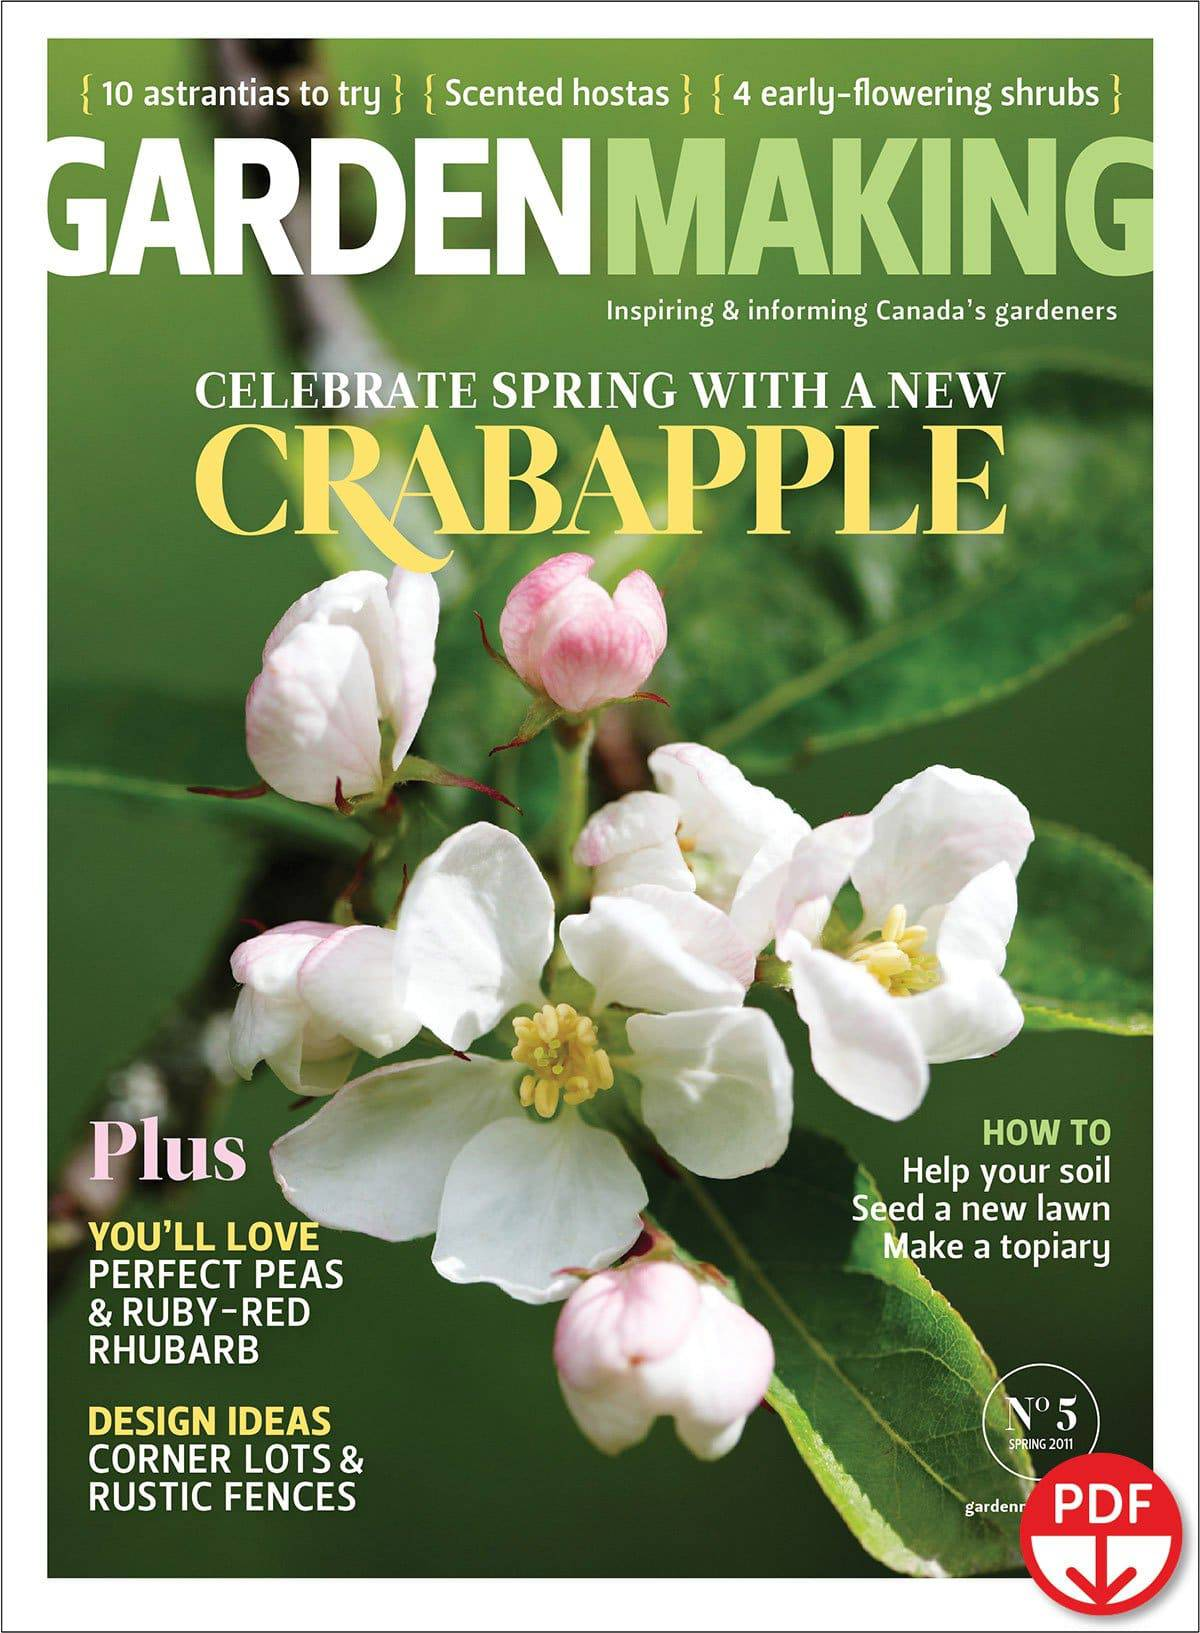 New information and expert picks for crabapples in Garden Making No. 5.